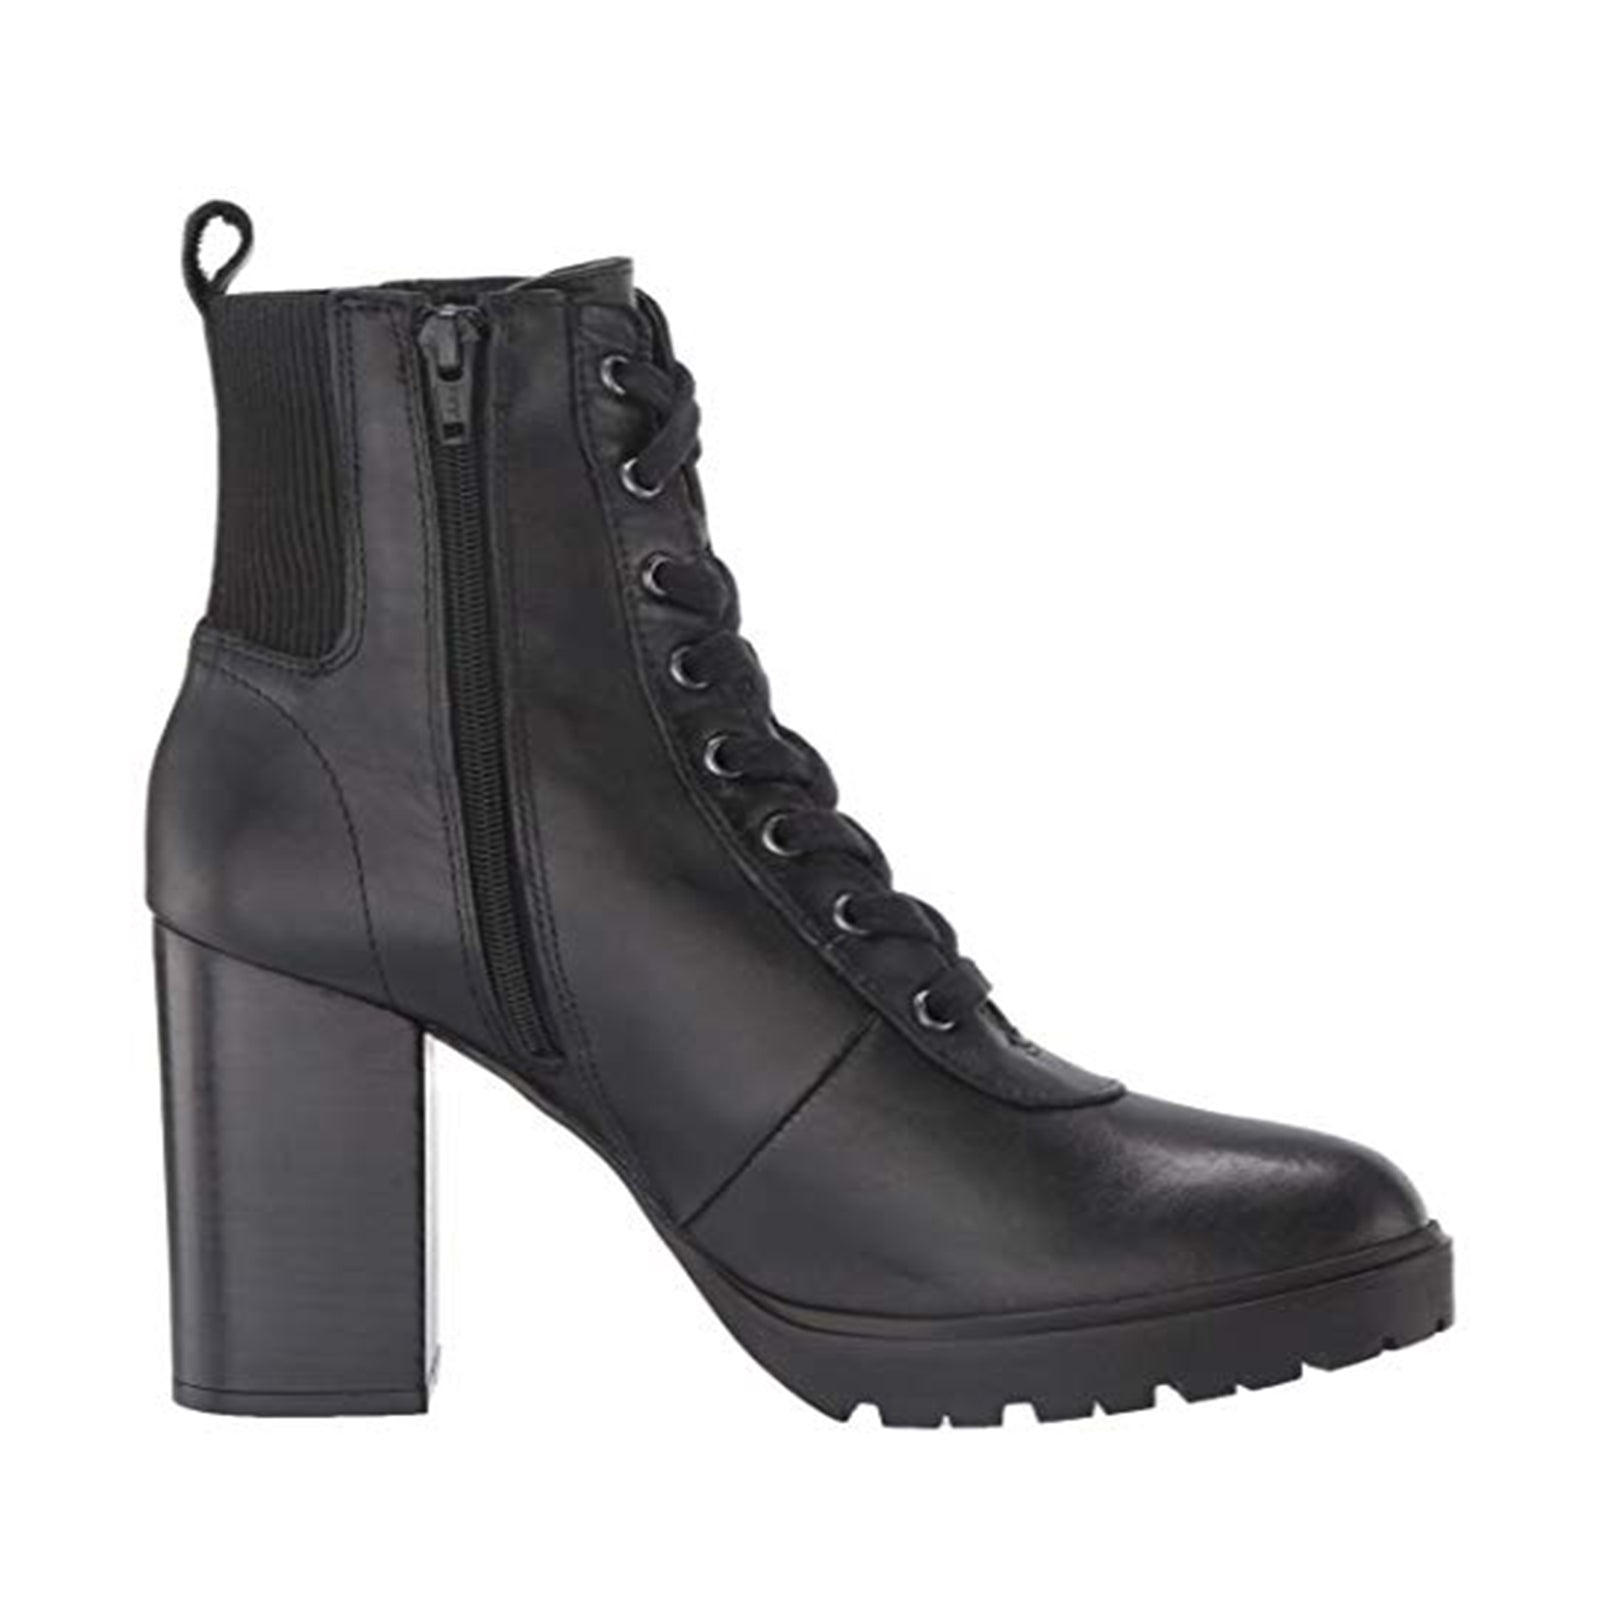 25f454b74b6 Recently Viewed Products. Steve Madden LATCH